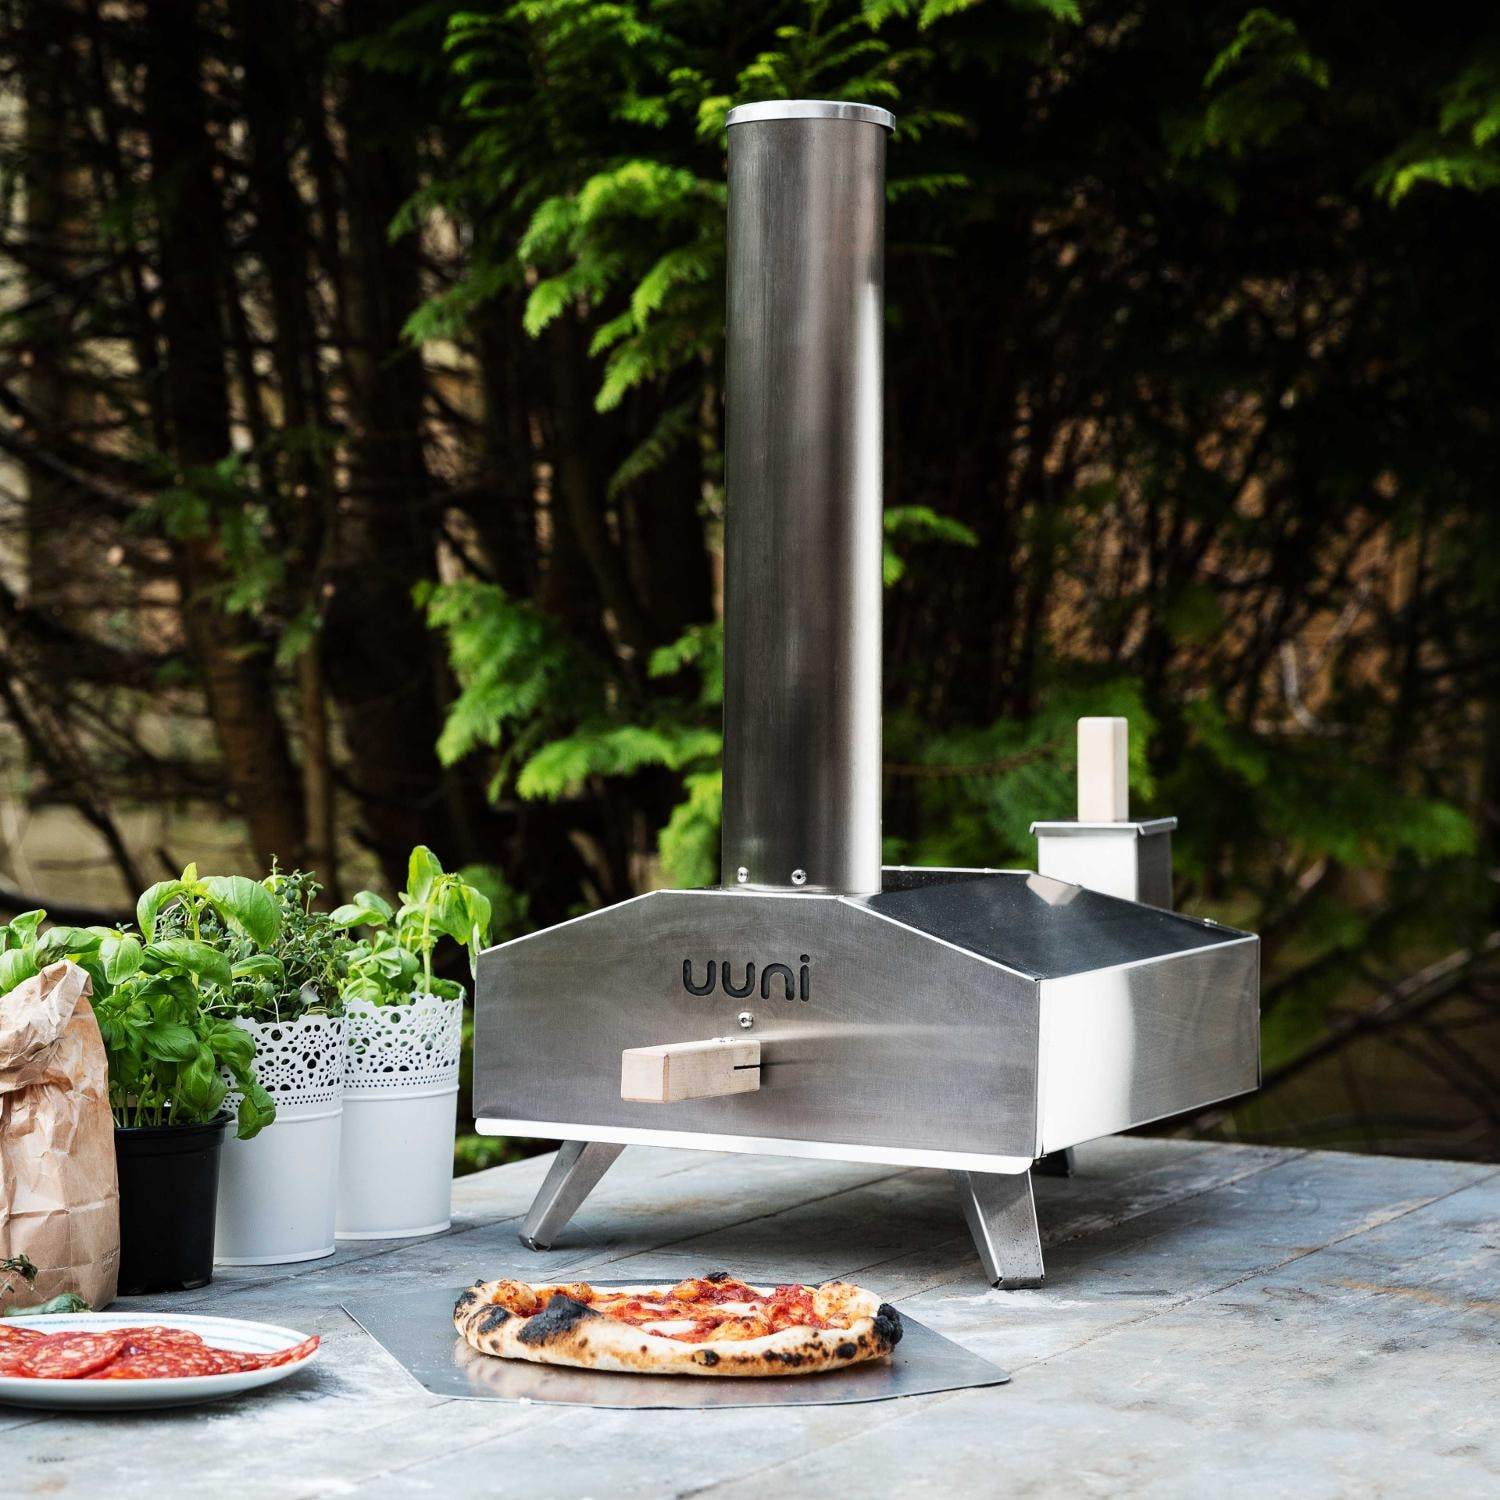 Uuni 3 Portable Outdoor Wood Fired Pellet Pizza Oven Stainless Steel Bbq Guys